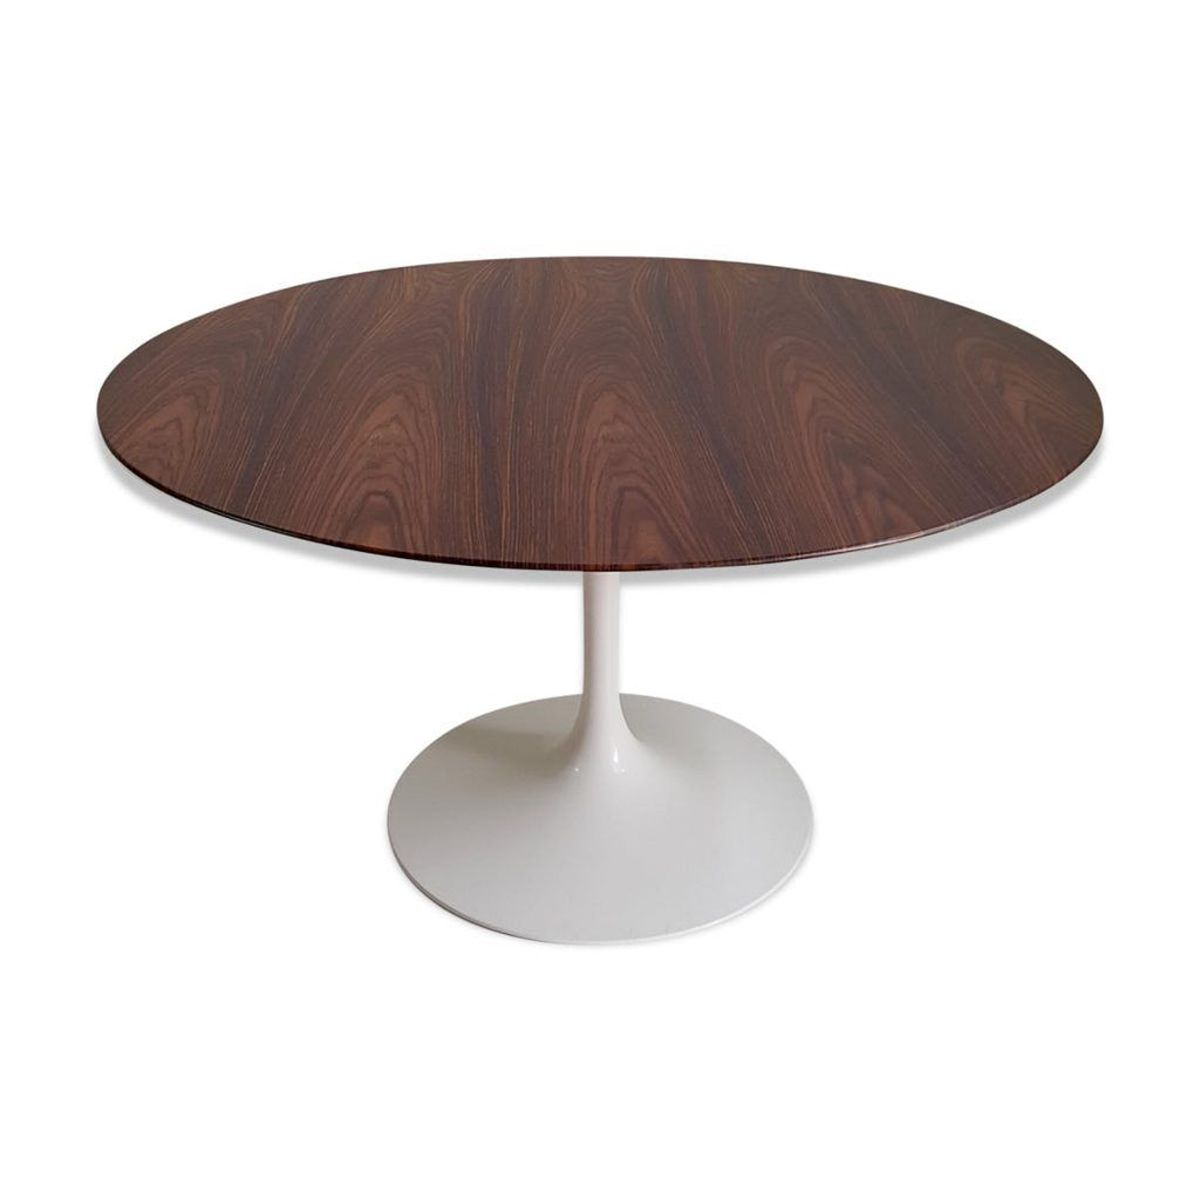 tulipe table by eero saarinen for knoll international 1970s for sale at pamono. Black Bedroom Furniture Sets. Home Design Ideas